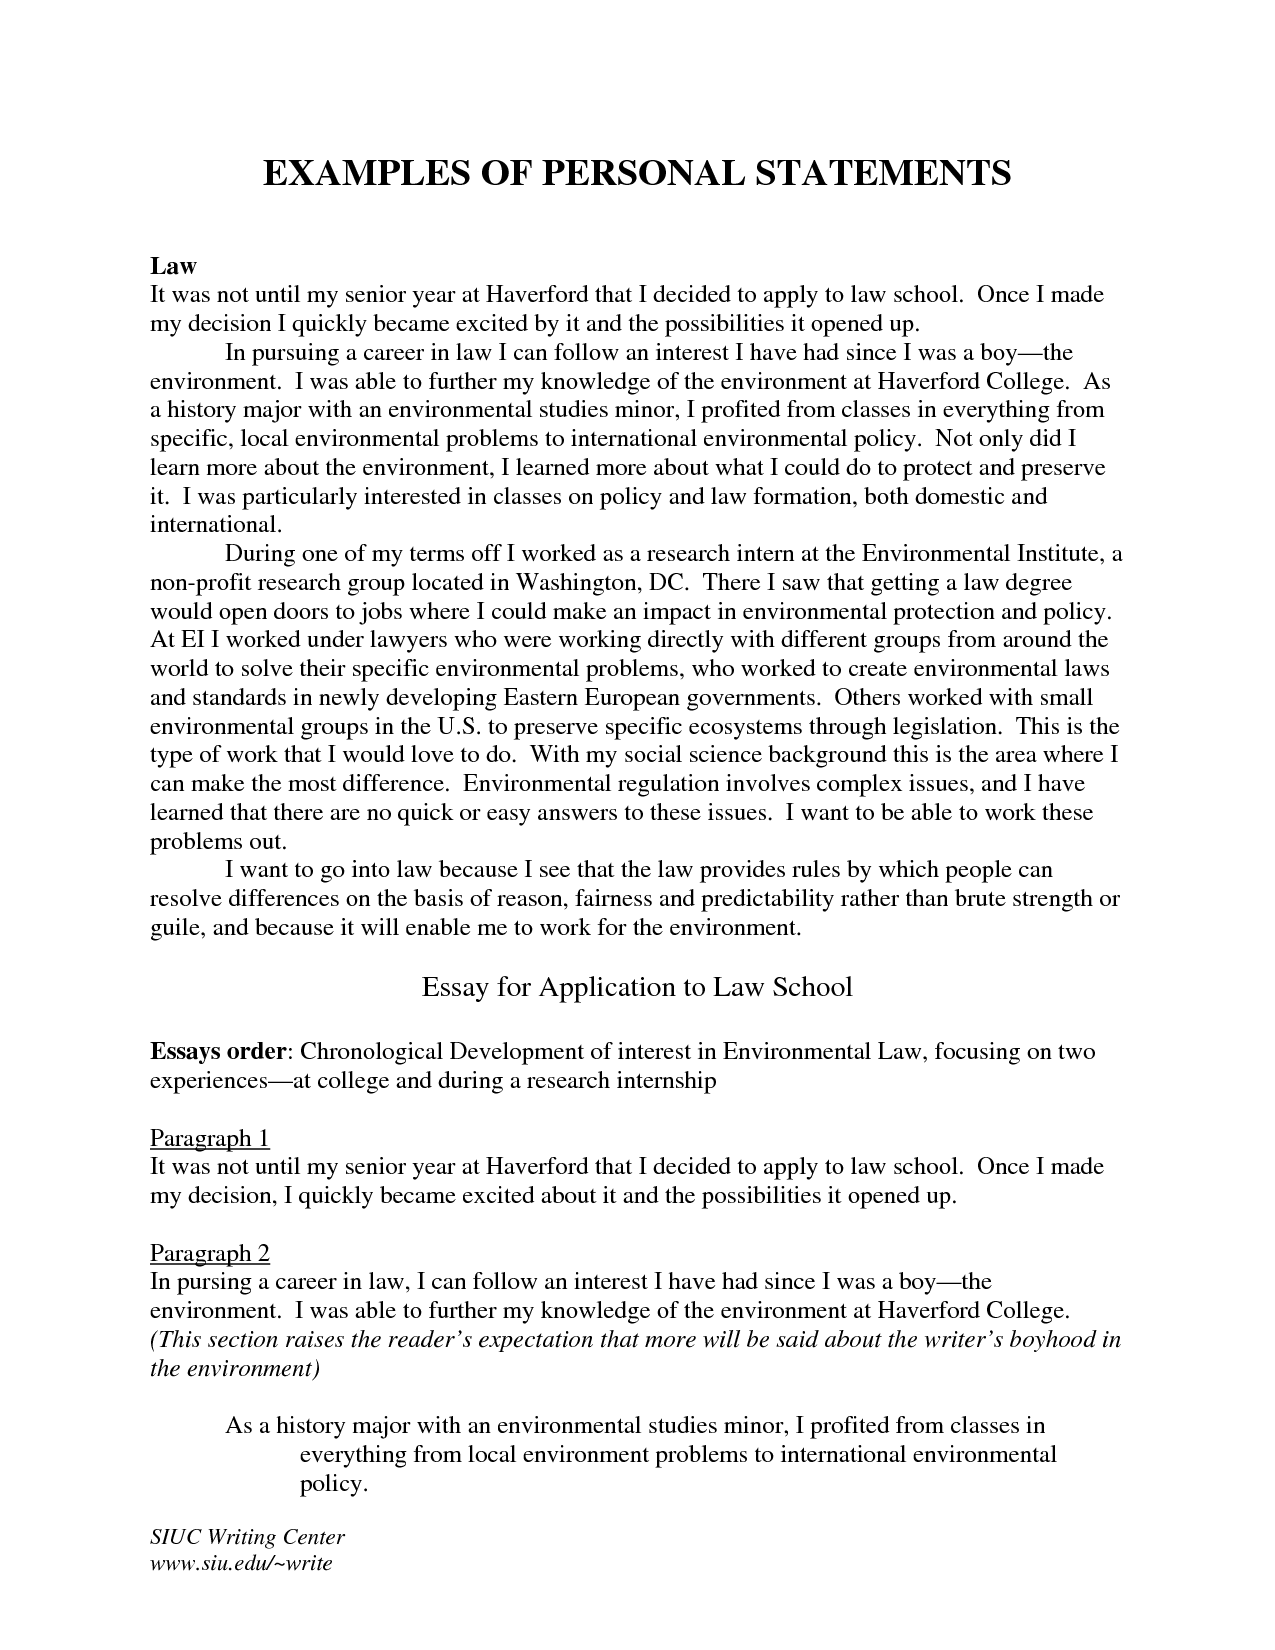 Religion And Science Essay  Essay Writing Format For High School Students also Health And Fitness Essay Grad School Essays Samples Offers Tips On Writing A  Thesis For Compare Contrast Essay